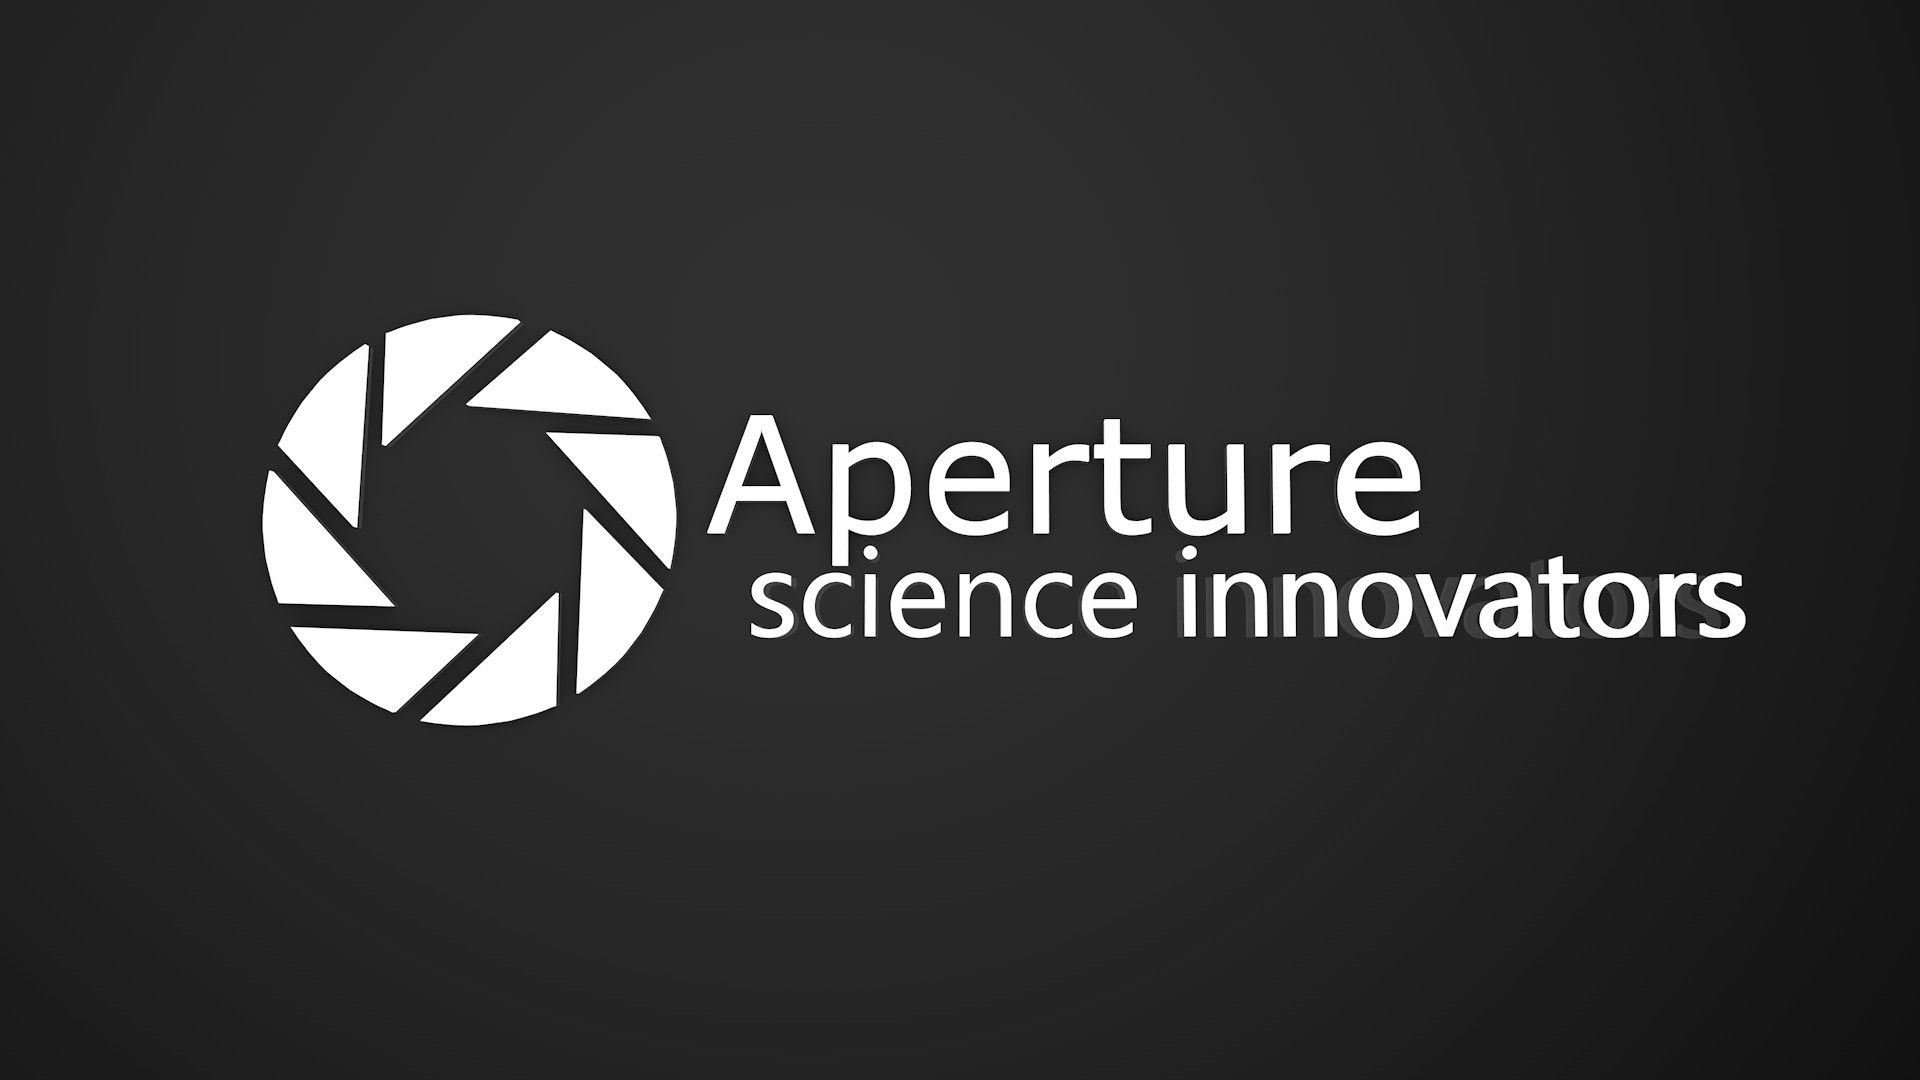 apertures science whit